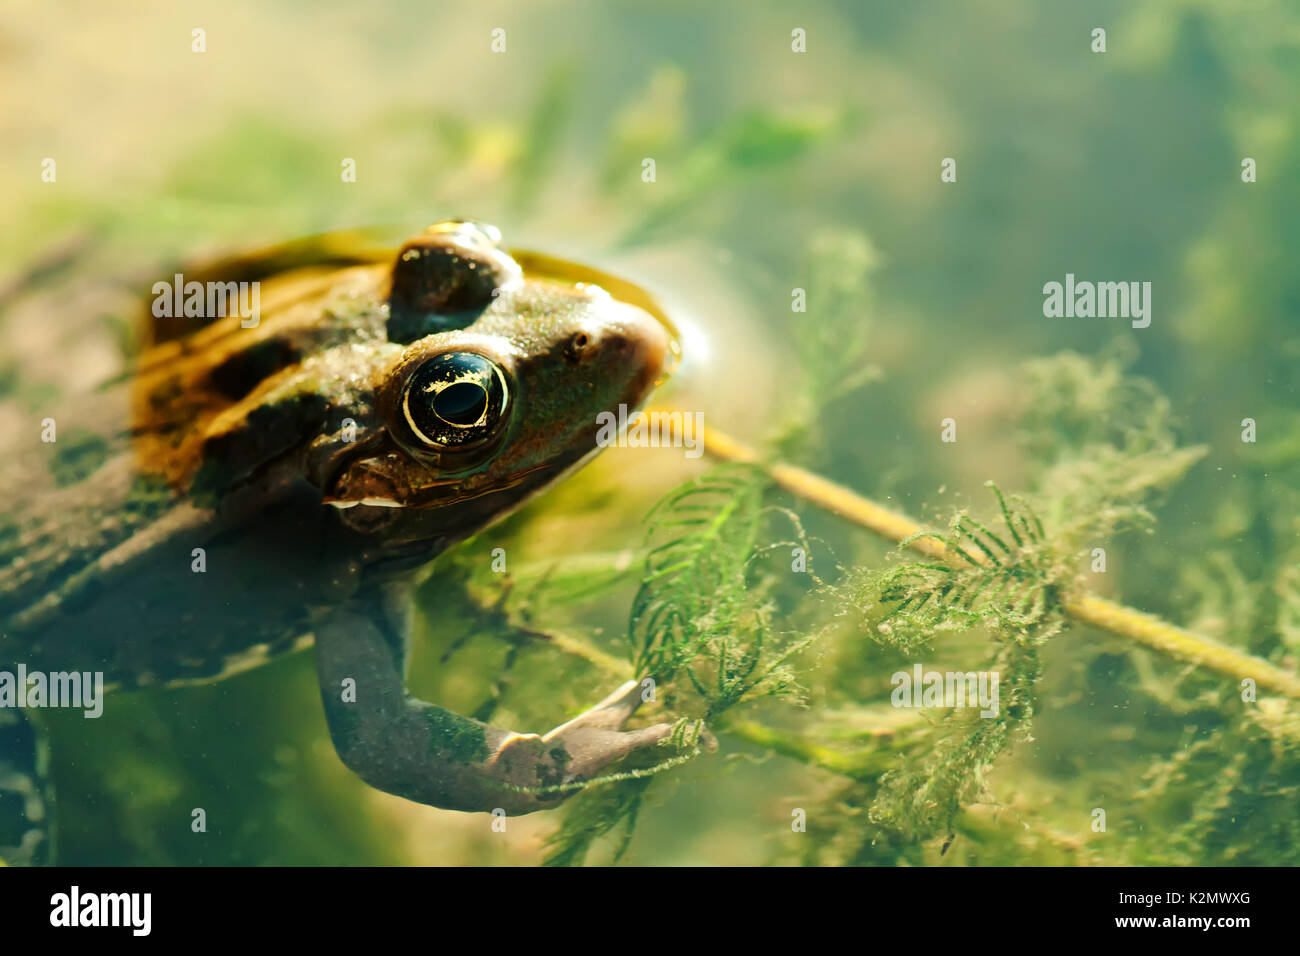 Natural habitat swimming green frog Marsh, brown camouflage amphibian Pelophylax ridibundus. Up view, selective focus, river floral background - Stock Image